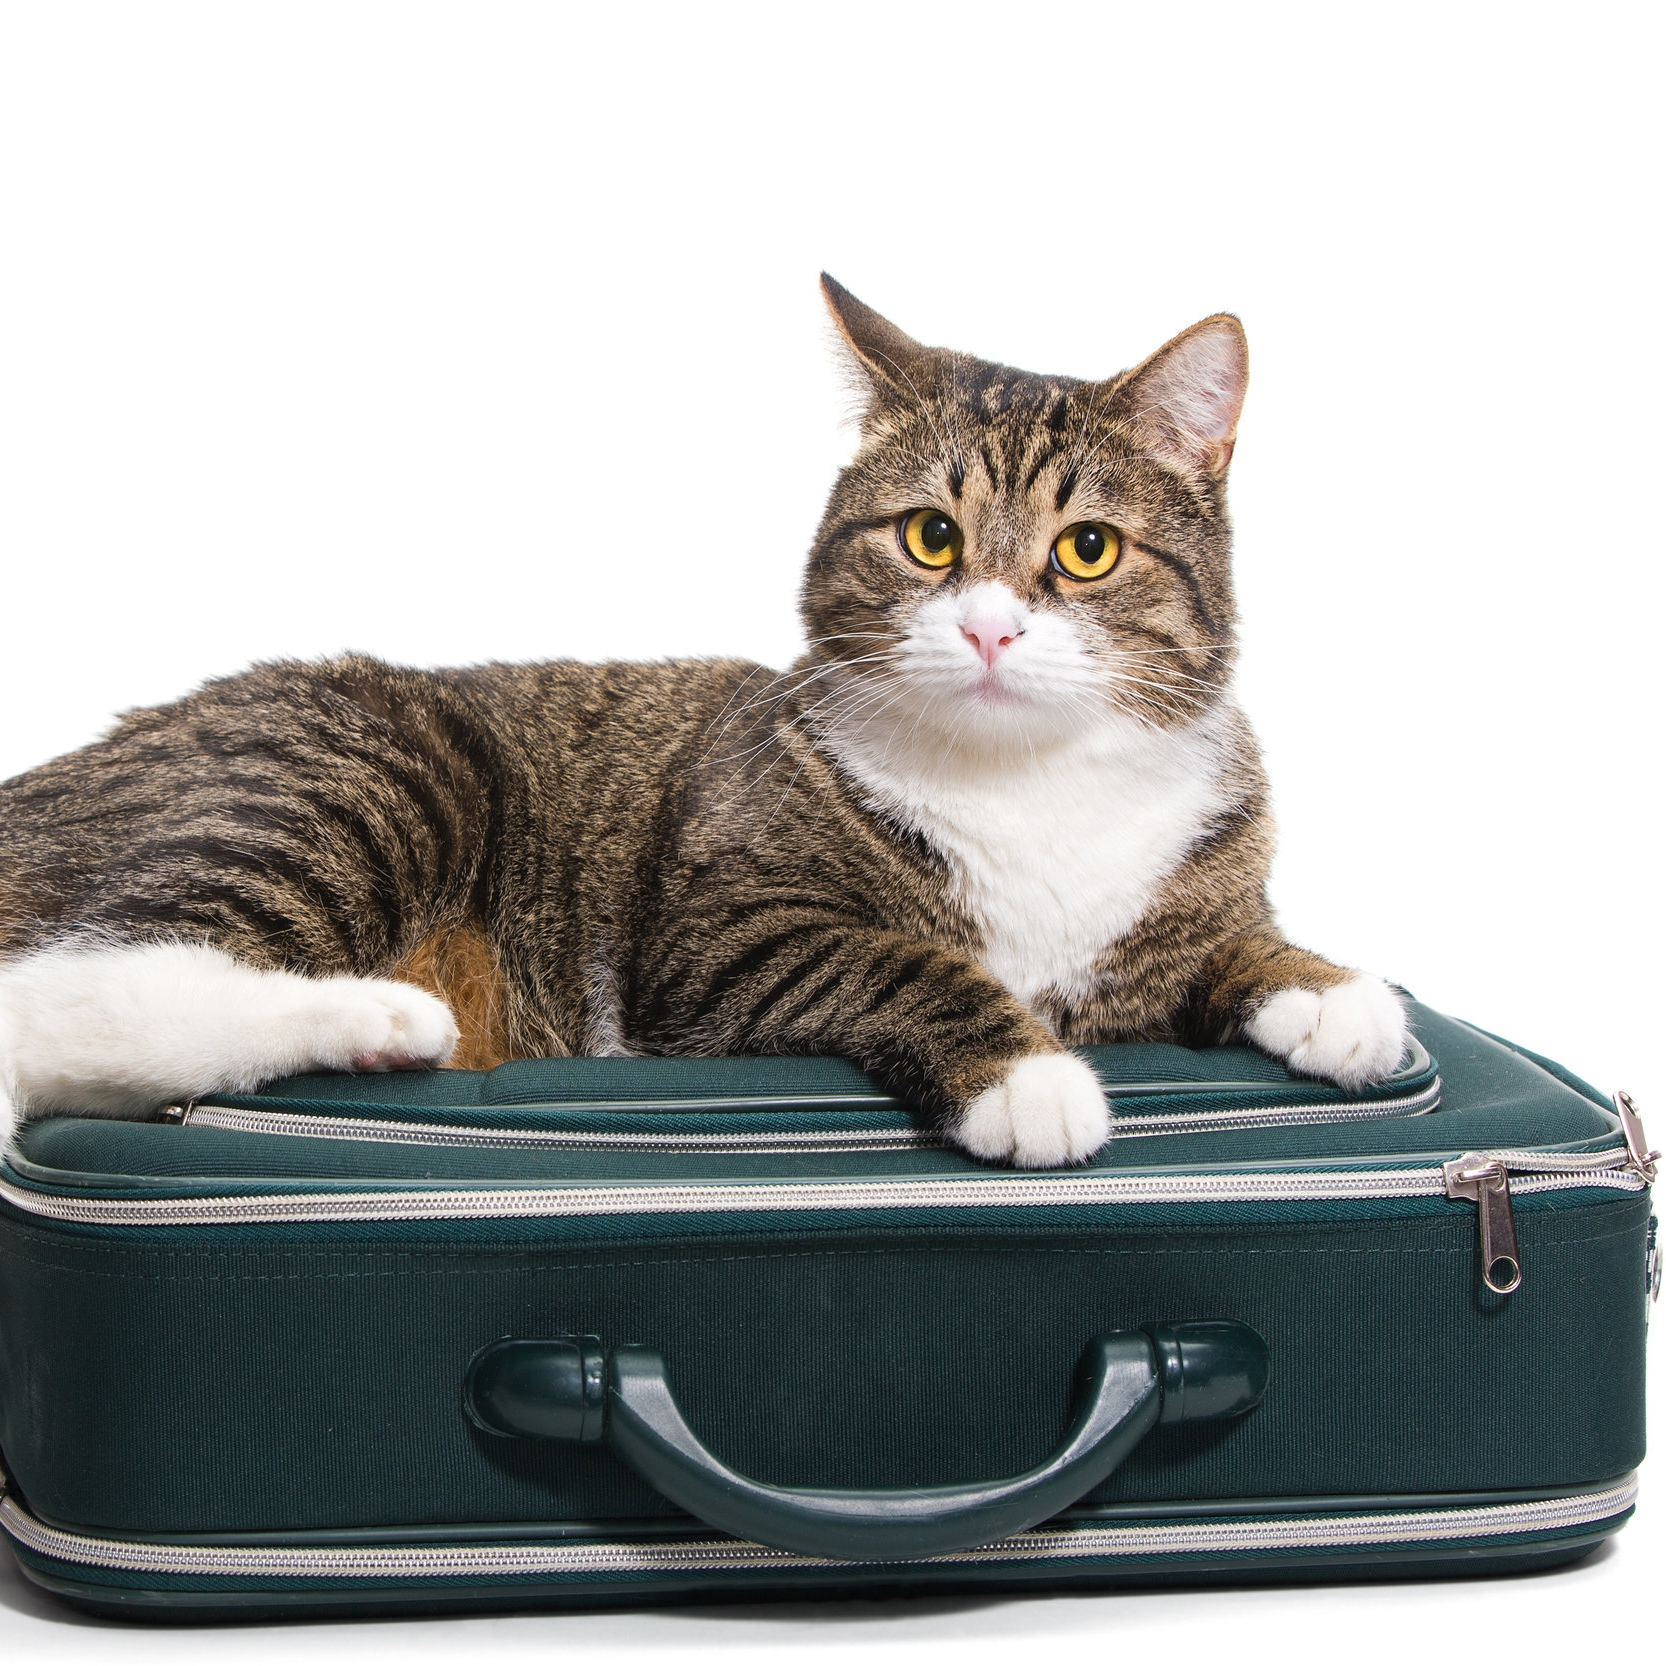 EMergency boarding - We're here to help. If you or someone you know requires emergency boarding for a beloved pet/cat or dog, we have limited space available at the shelter or, if appropriate, in the home of one of our foster families.